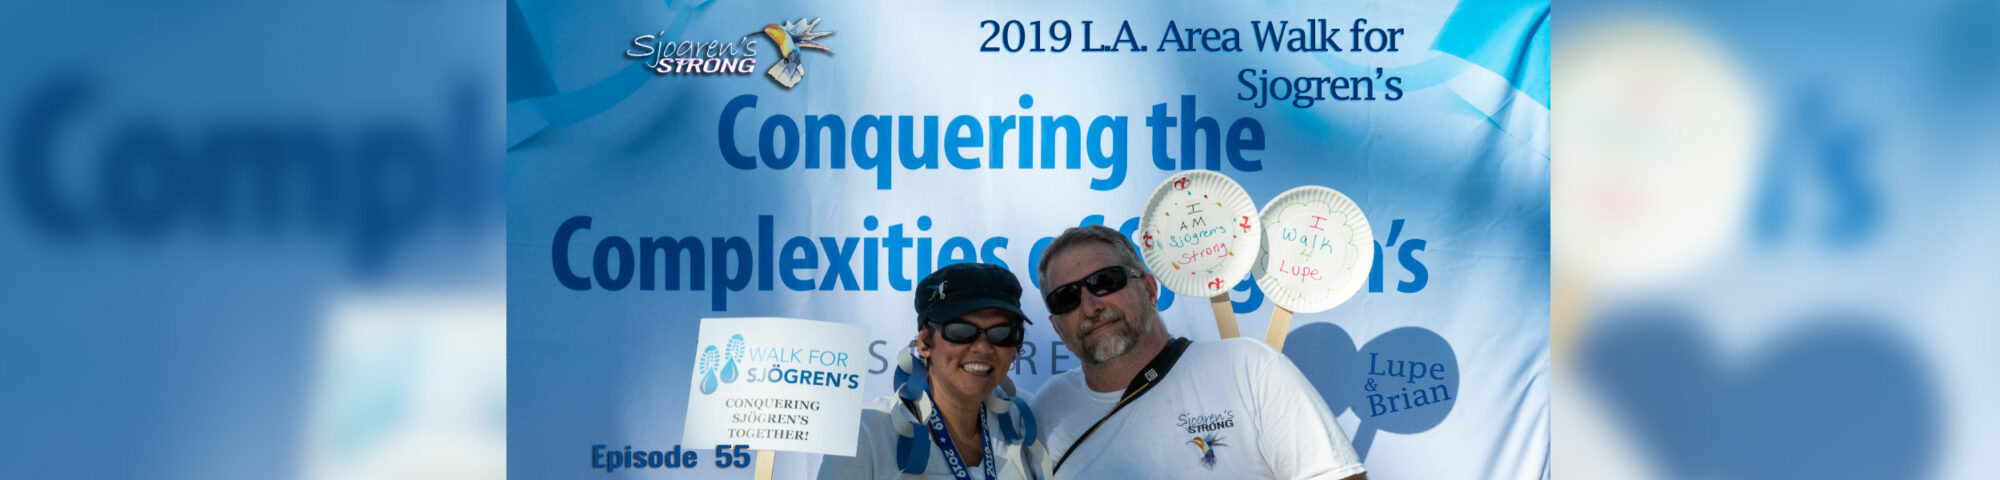 2019 L.A. Area Walk for Sjogren's